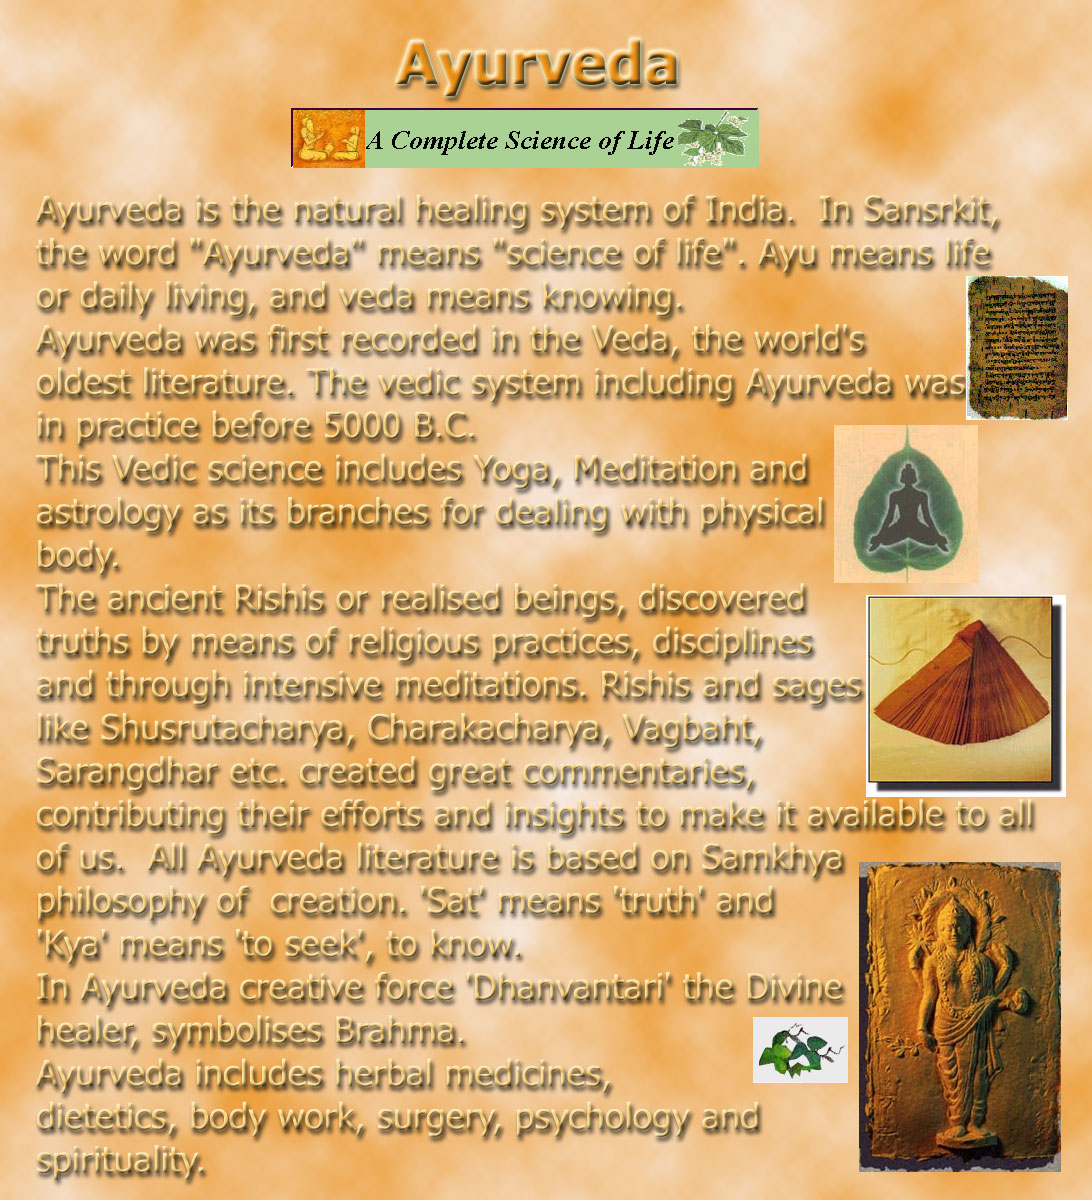 ayurvedic research papers Dhara is the acronym for digital helpline for ayurveda research articles it is the first comprehensive online indexing service exclusively for research articles published in the field of ayurveda dhara is accessible online at wwwdharaonlineorg.